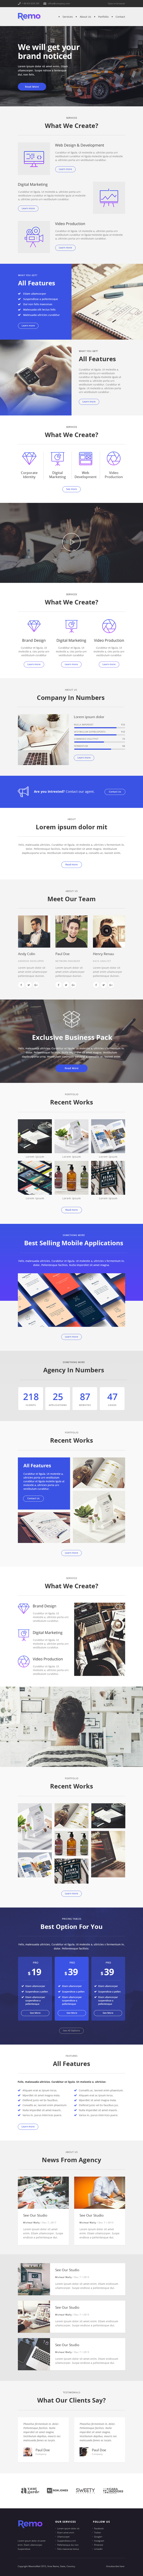 Remo Responsive Email Newsletter Template On Behance